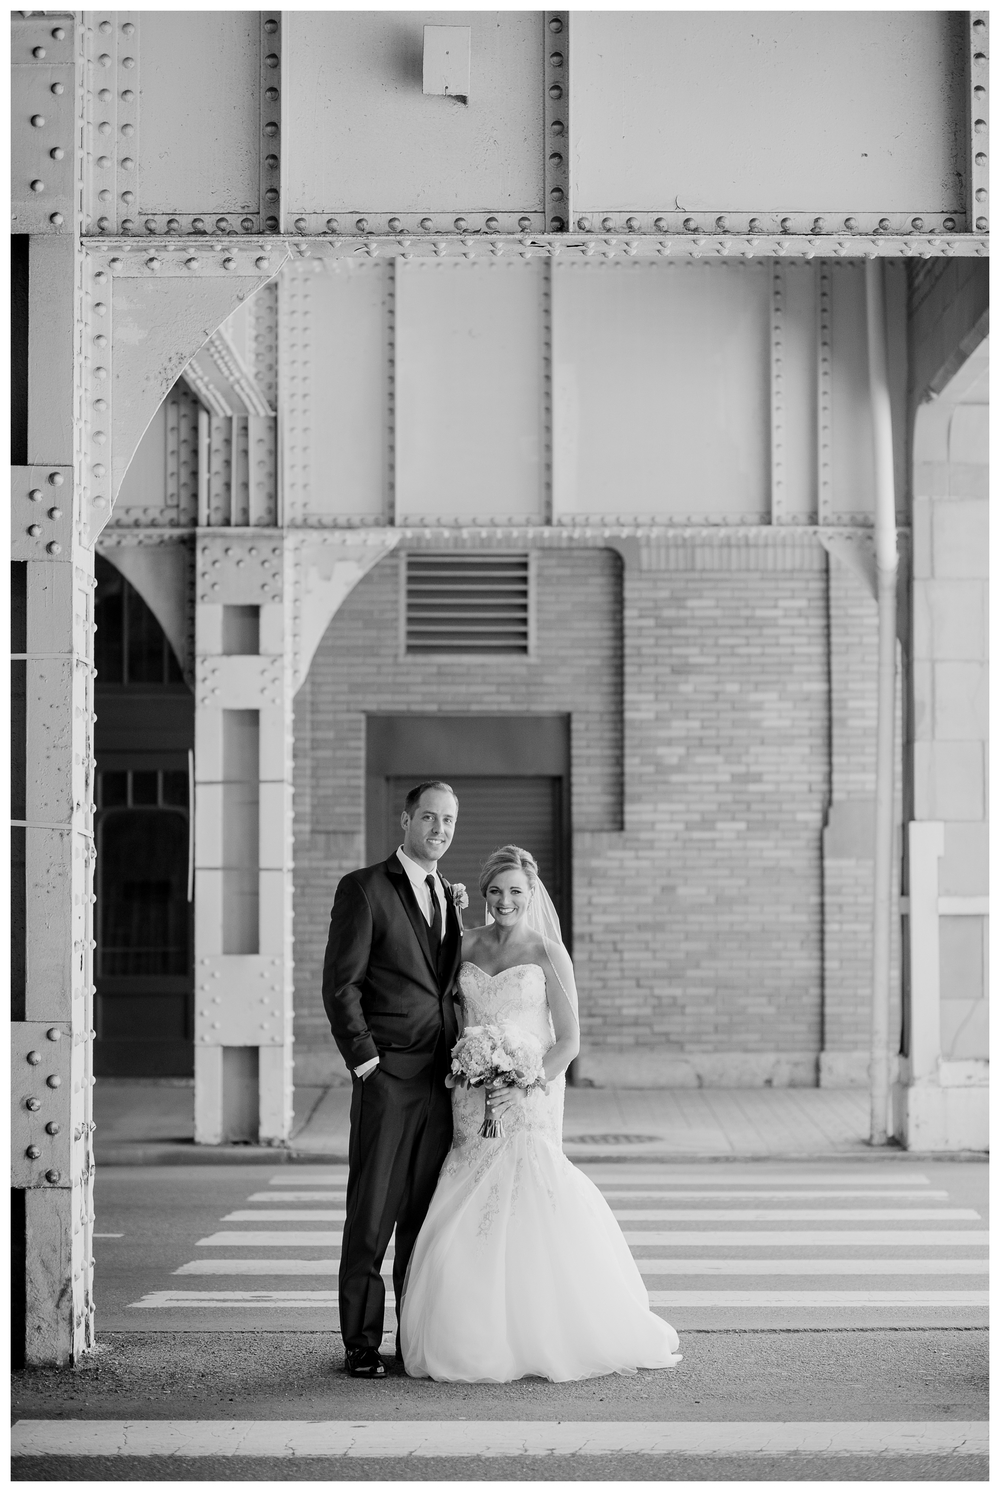 Rebecca_Bridges_Photography_Indianapolis_Wedding_Photographer_4152.jpg